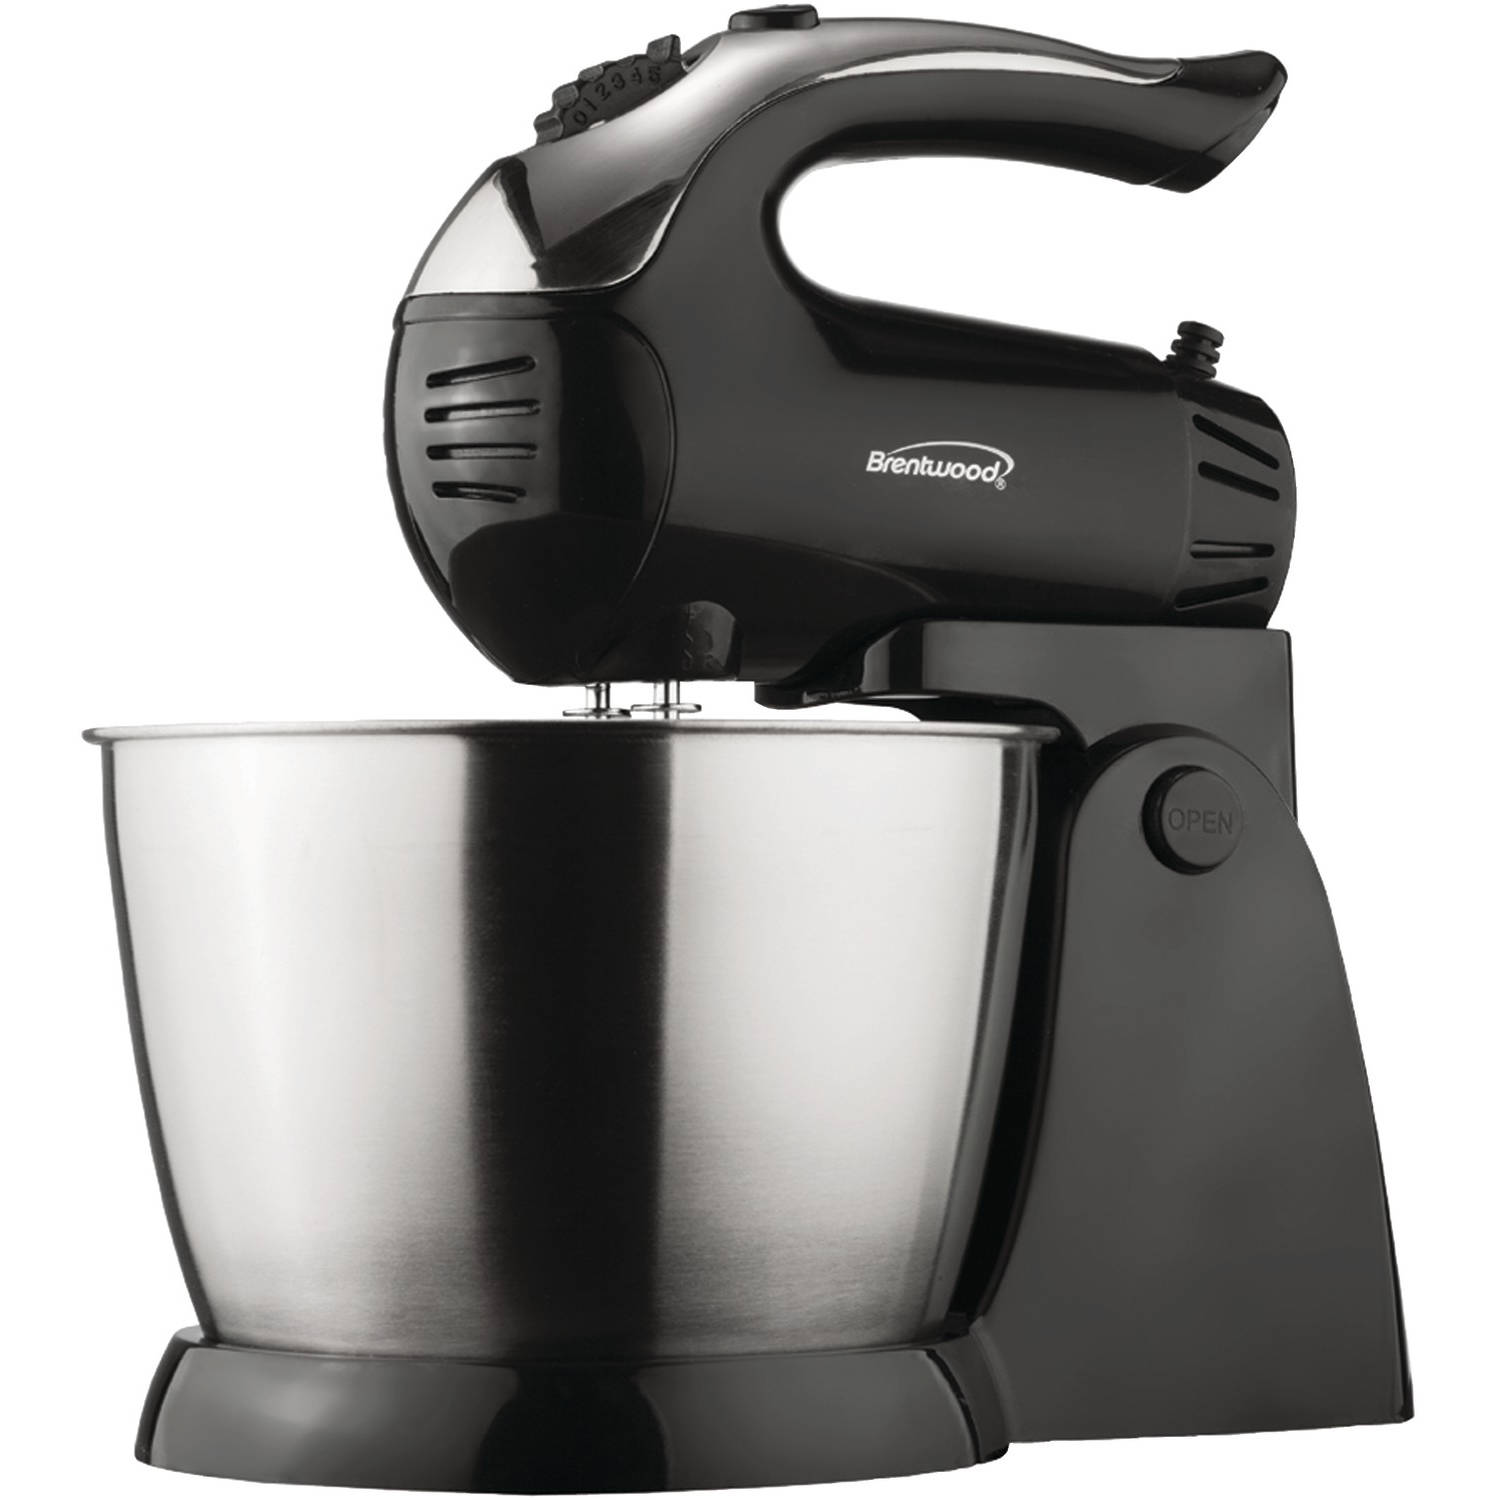 Brentwood Appliances SM-1153 5-Speed Stand Mixer with Stainless Steel Bowl by Brentwood Appliances